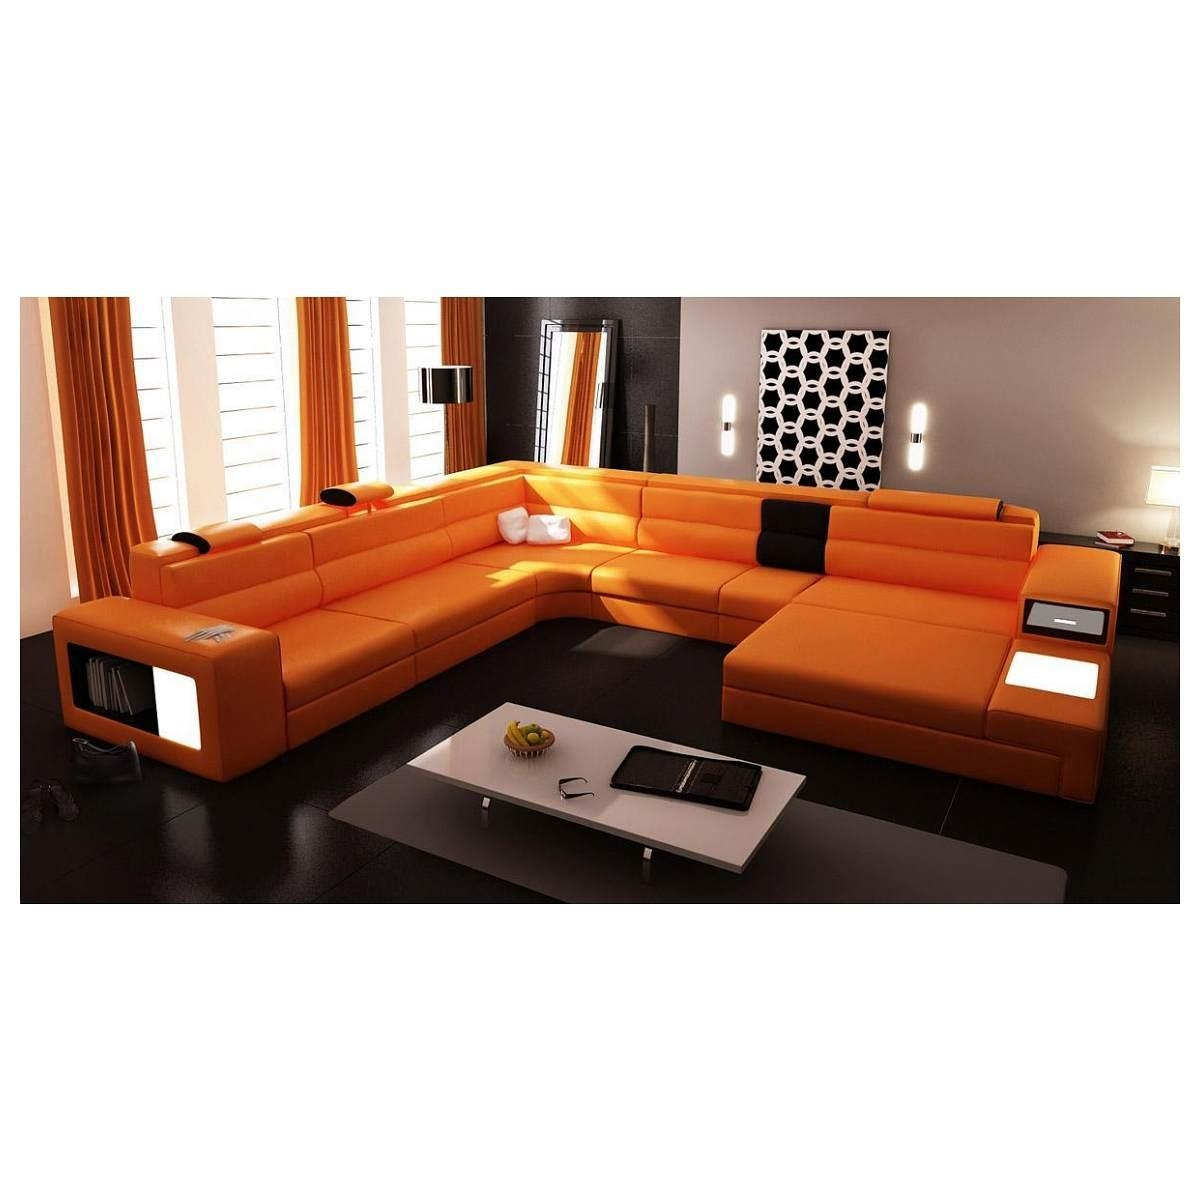 Orange Leather Sofa Nz | Tehranmix Decoration Inside Burnt Orange Leather Sofas (Image 10 of 20)